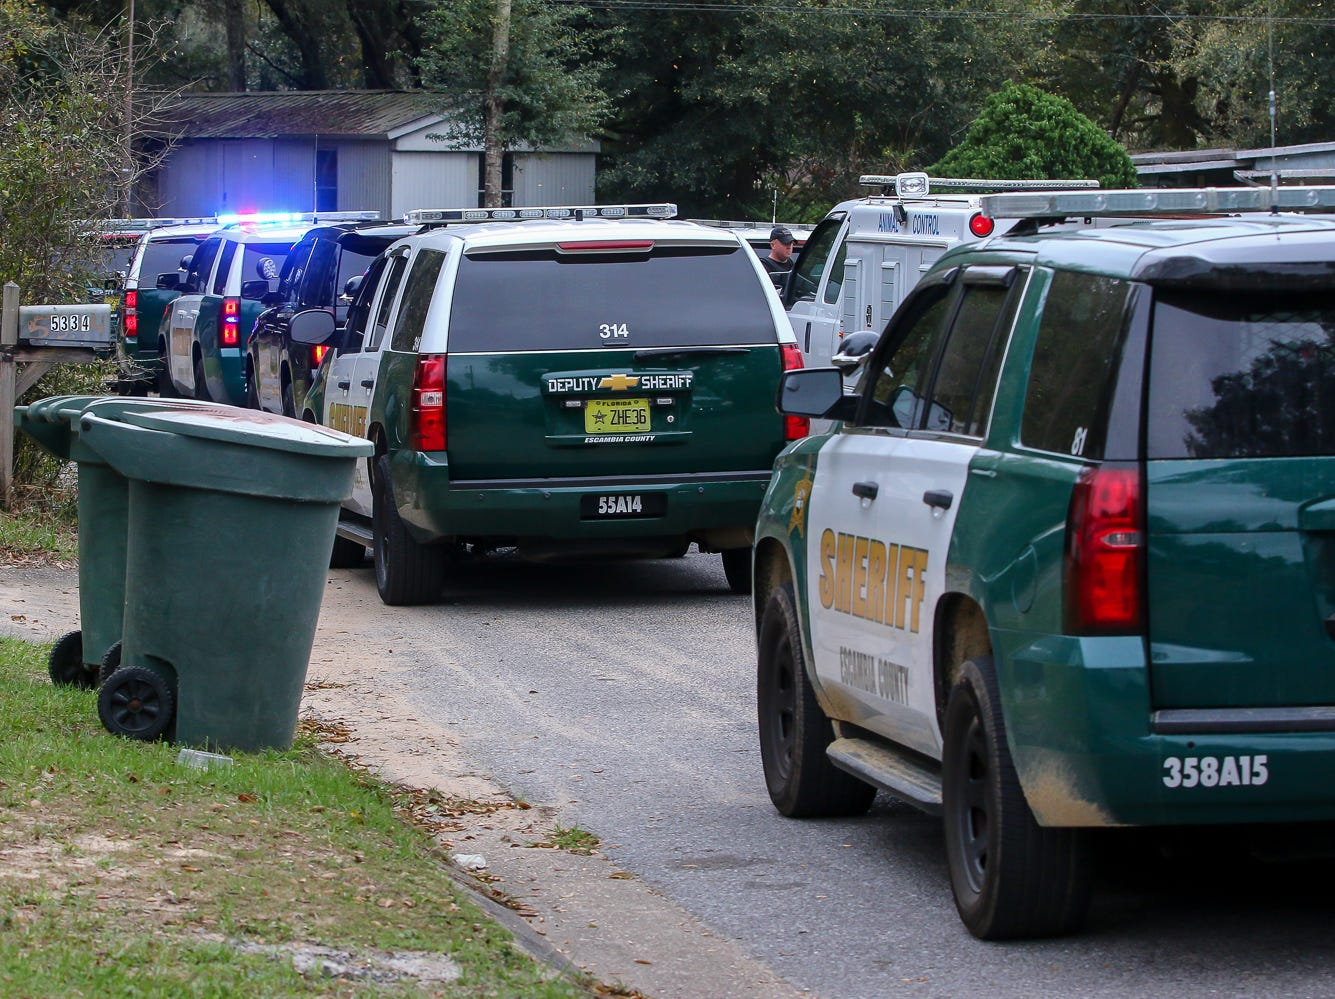 ECSO responds to two officers who were attacked by a dog as they were reportedly attempting to make an arrest on Wednesday, March 13, 2019. The dog was shot and killed.